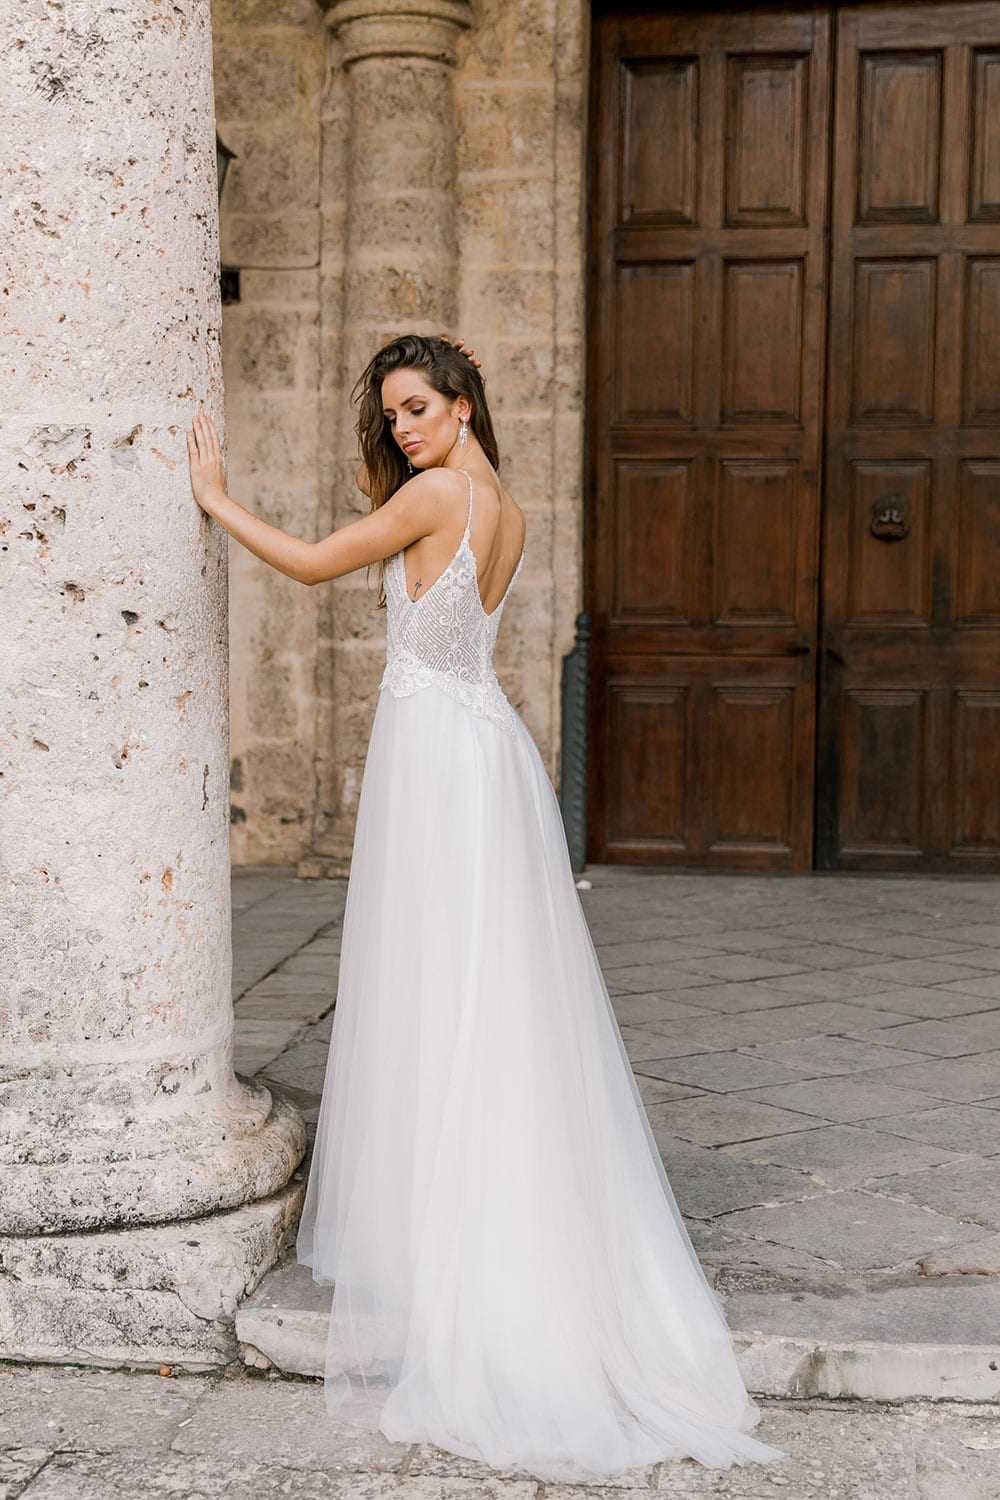 Model wearing Vinka Design Lucia Wedding Dress with Fitted Beaded Bodice, Tulle Skirt and Split in front of old church door in Havana